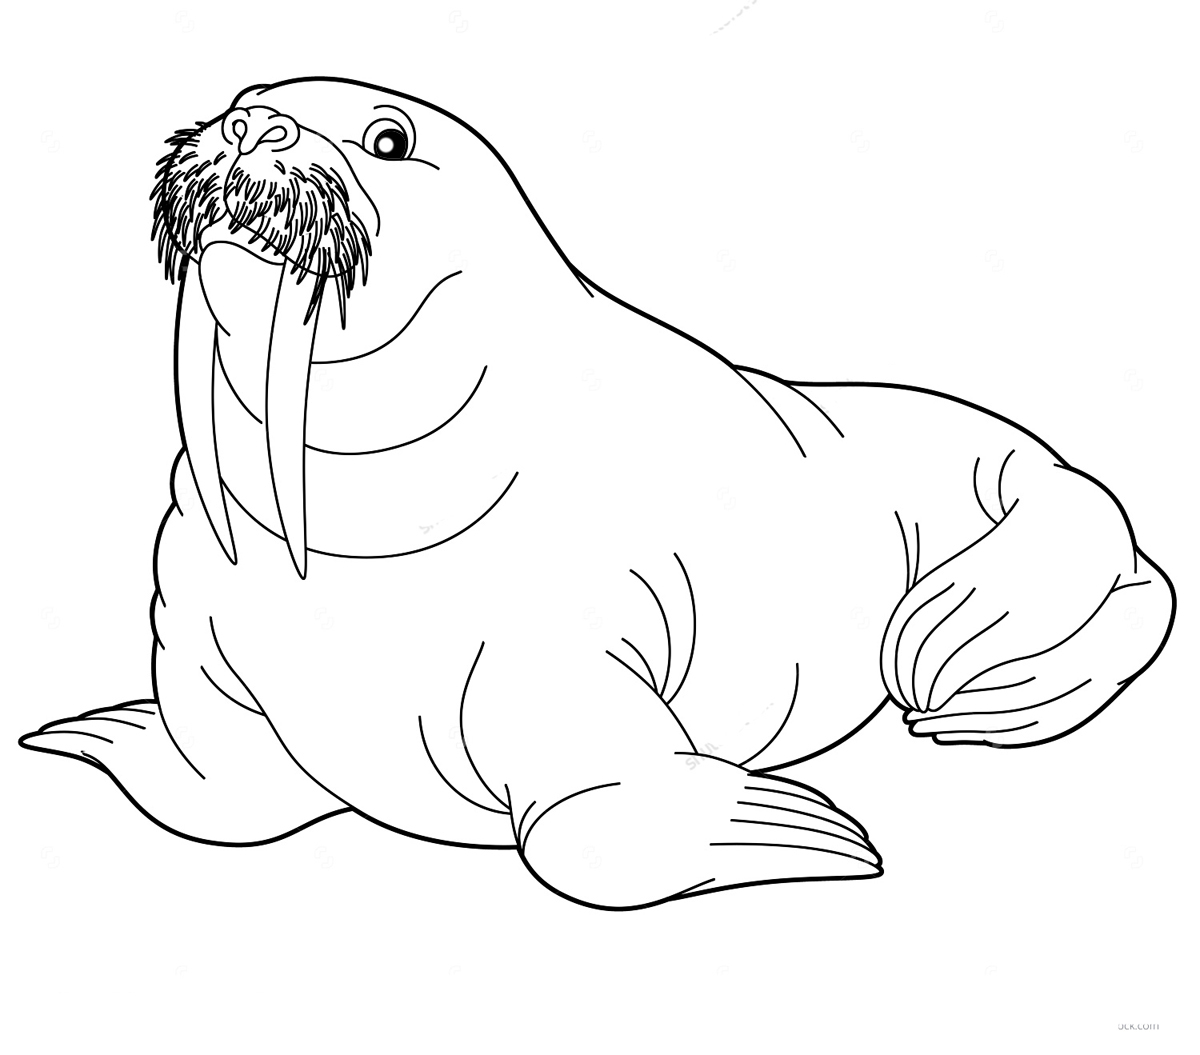 walrus coloring pages free walrus coloring pages download and print walrus pages walrus coloring